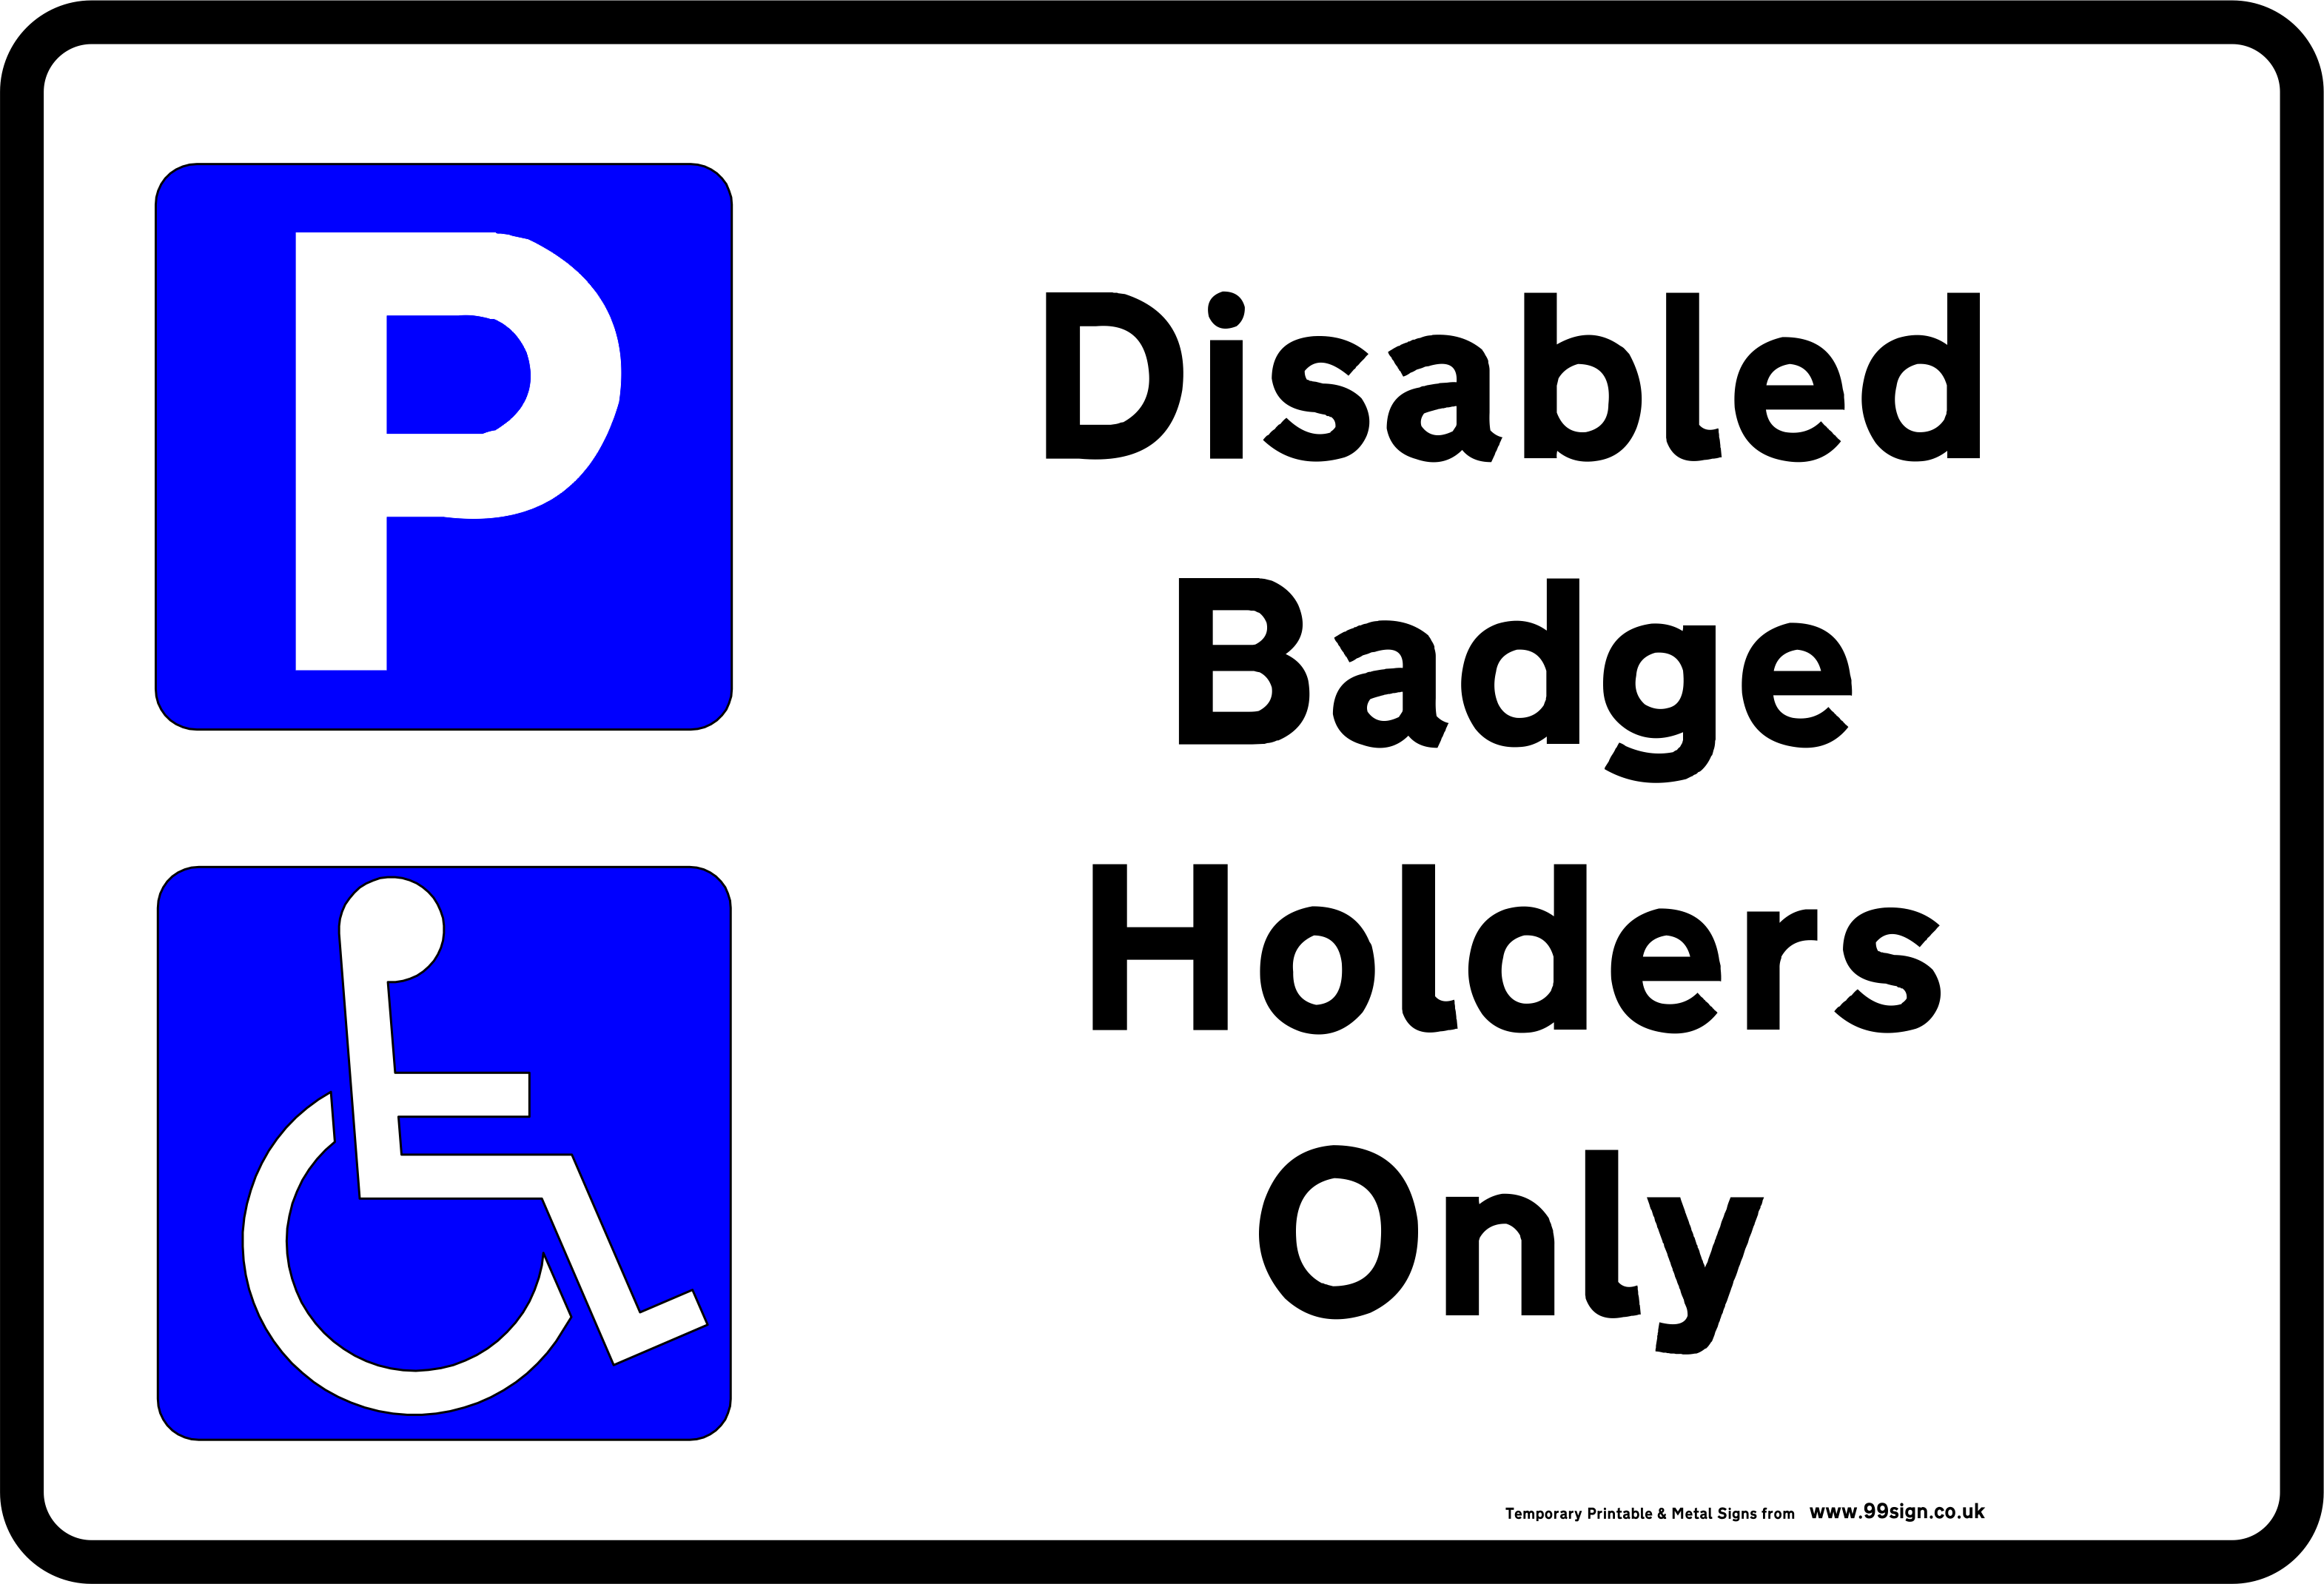 Printable disabled parking sign low cost vinyl or free template printable disabled parking sign low cost vinyl or free template clipart for self print maxwellsz